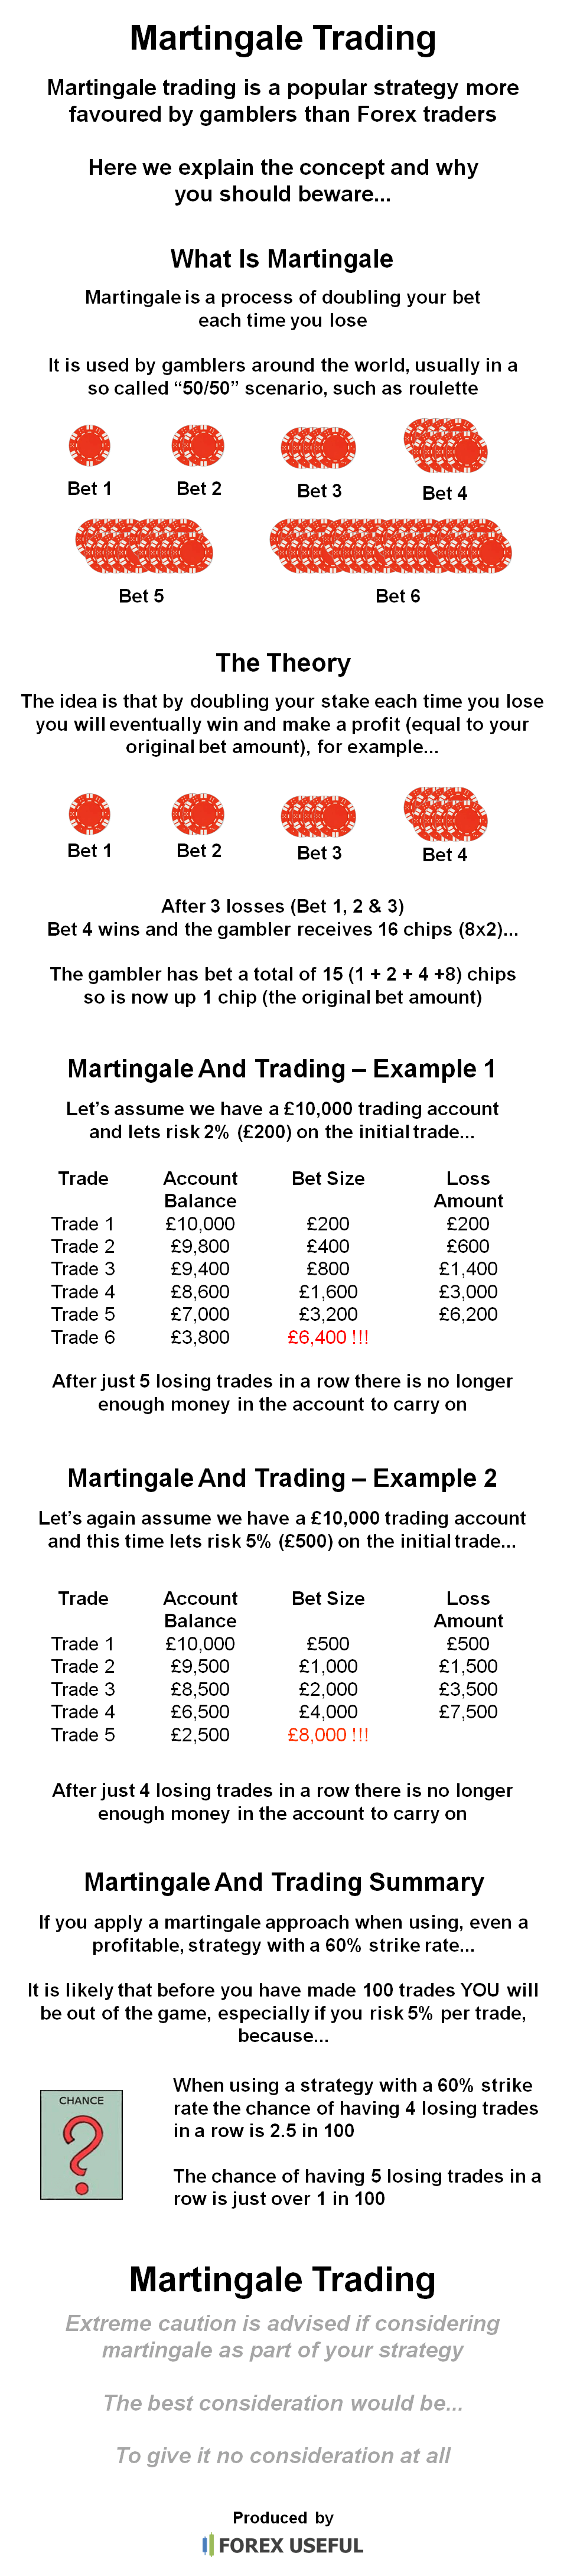 Understanding Leverage Part I | Forex Trading Explained - Go Forex